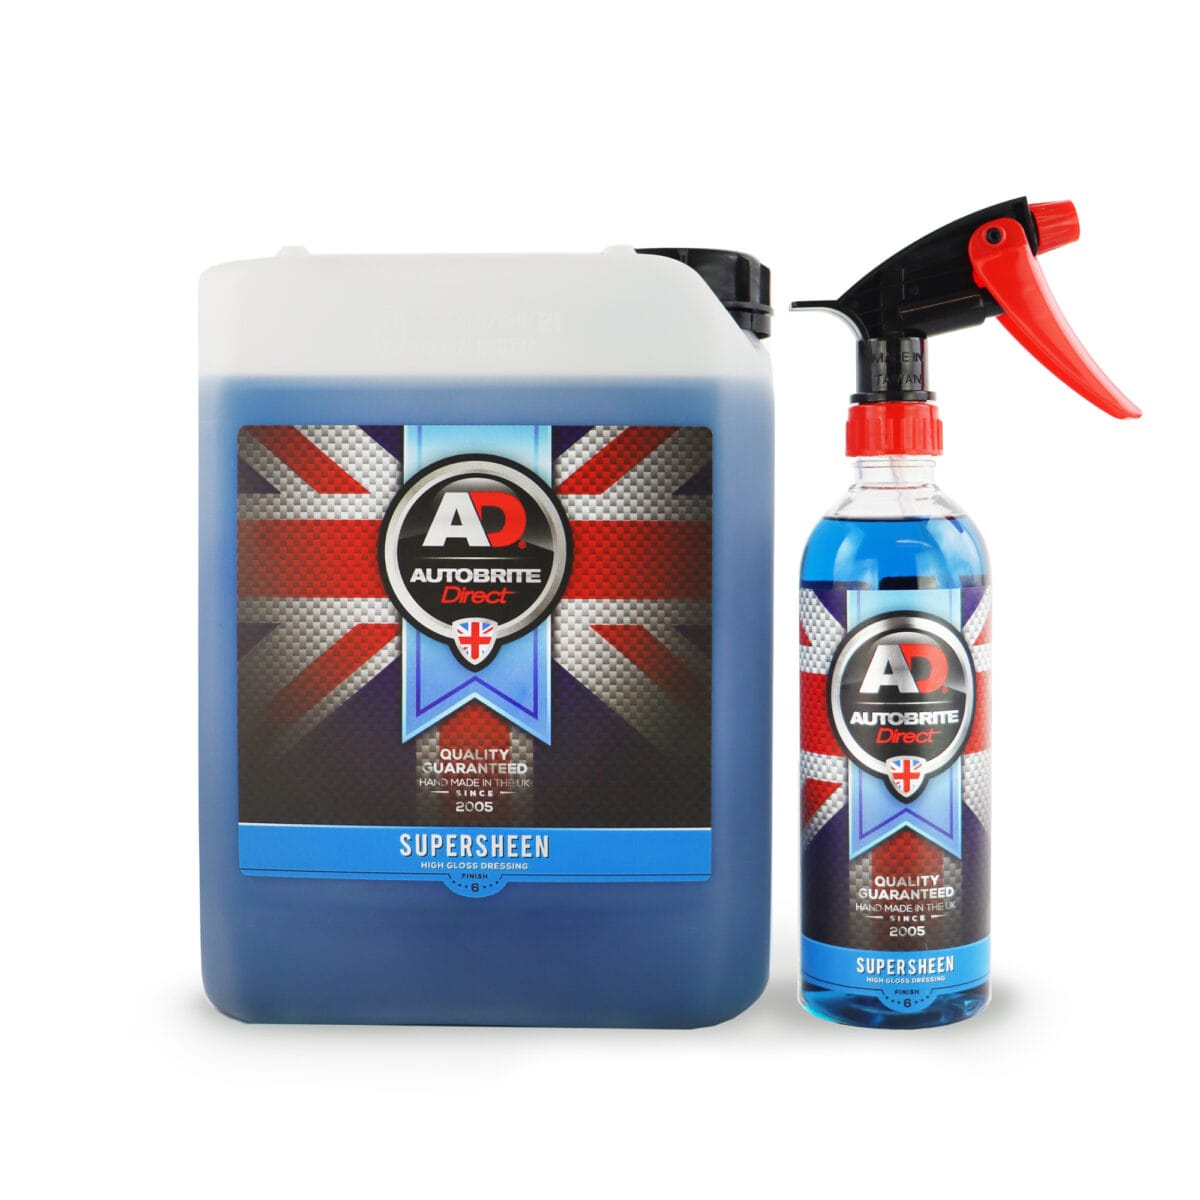 supersheen 5 ltr and 500 ml